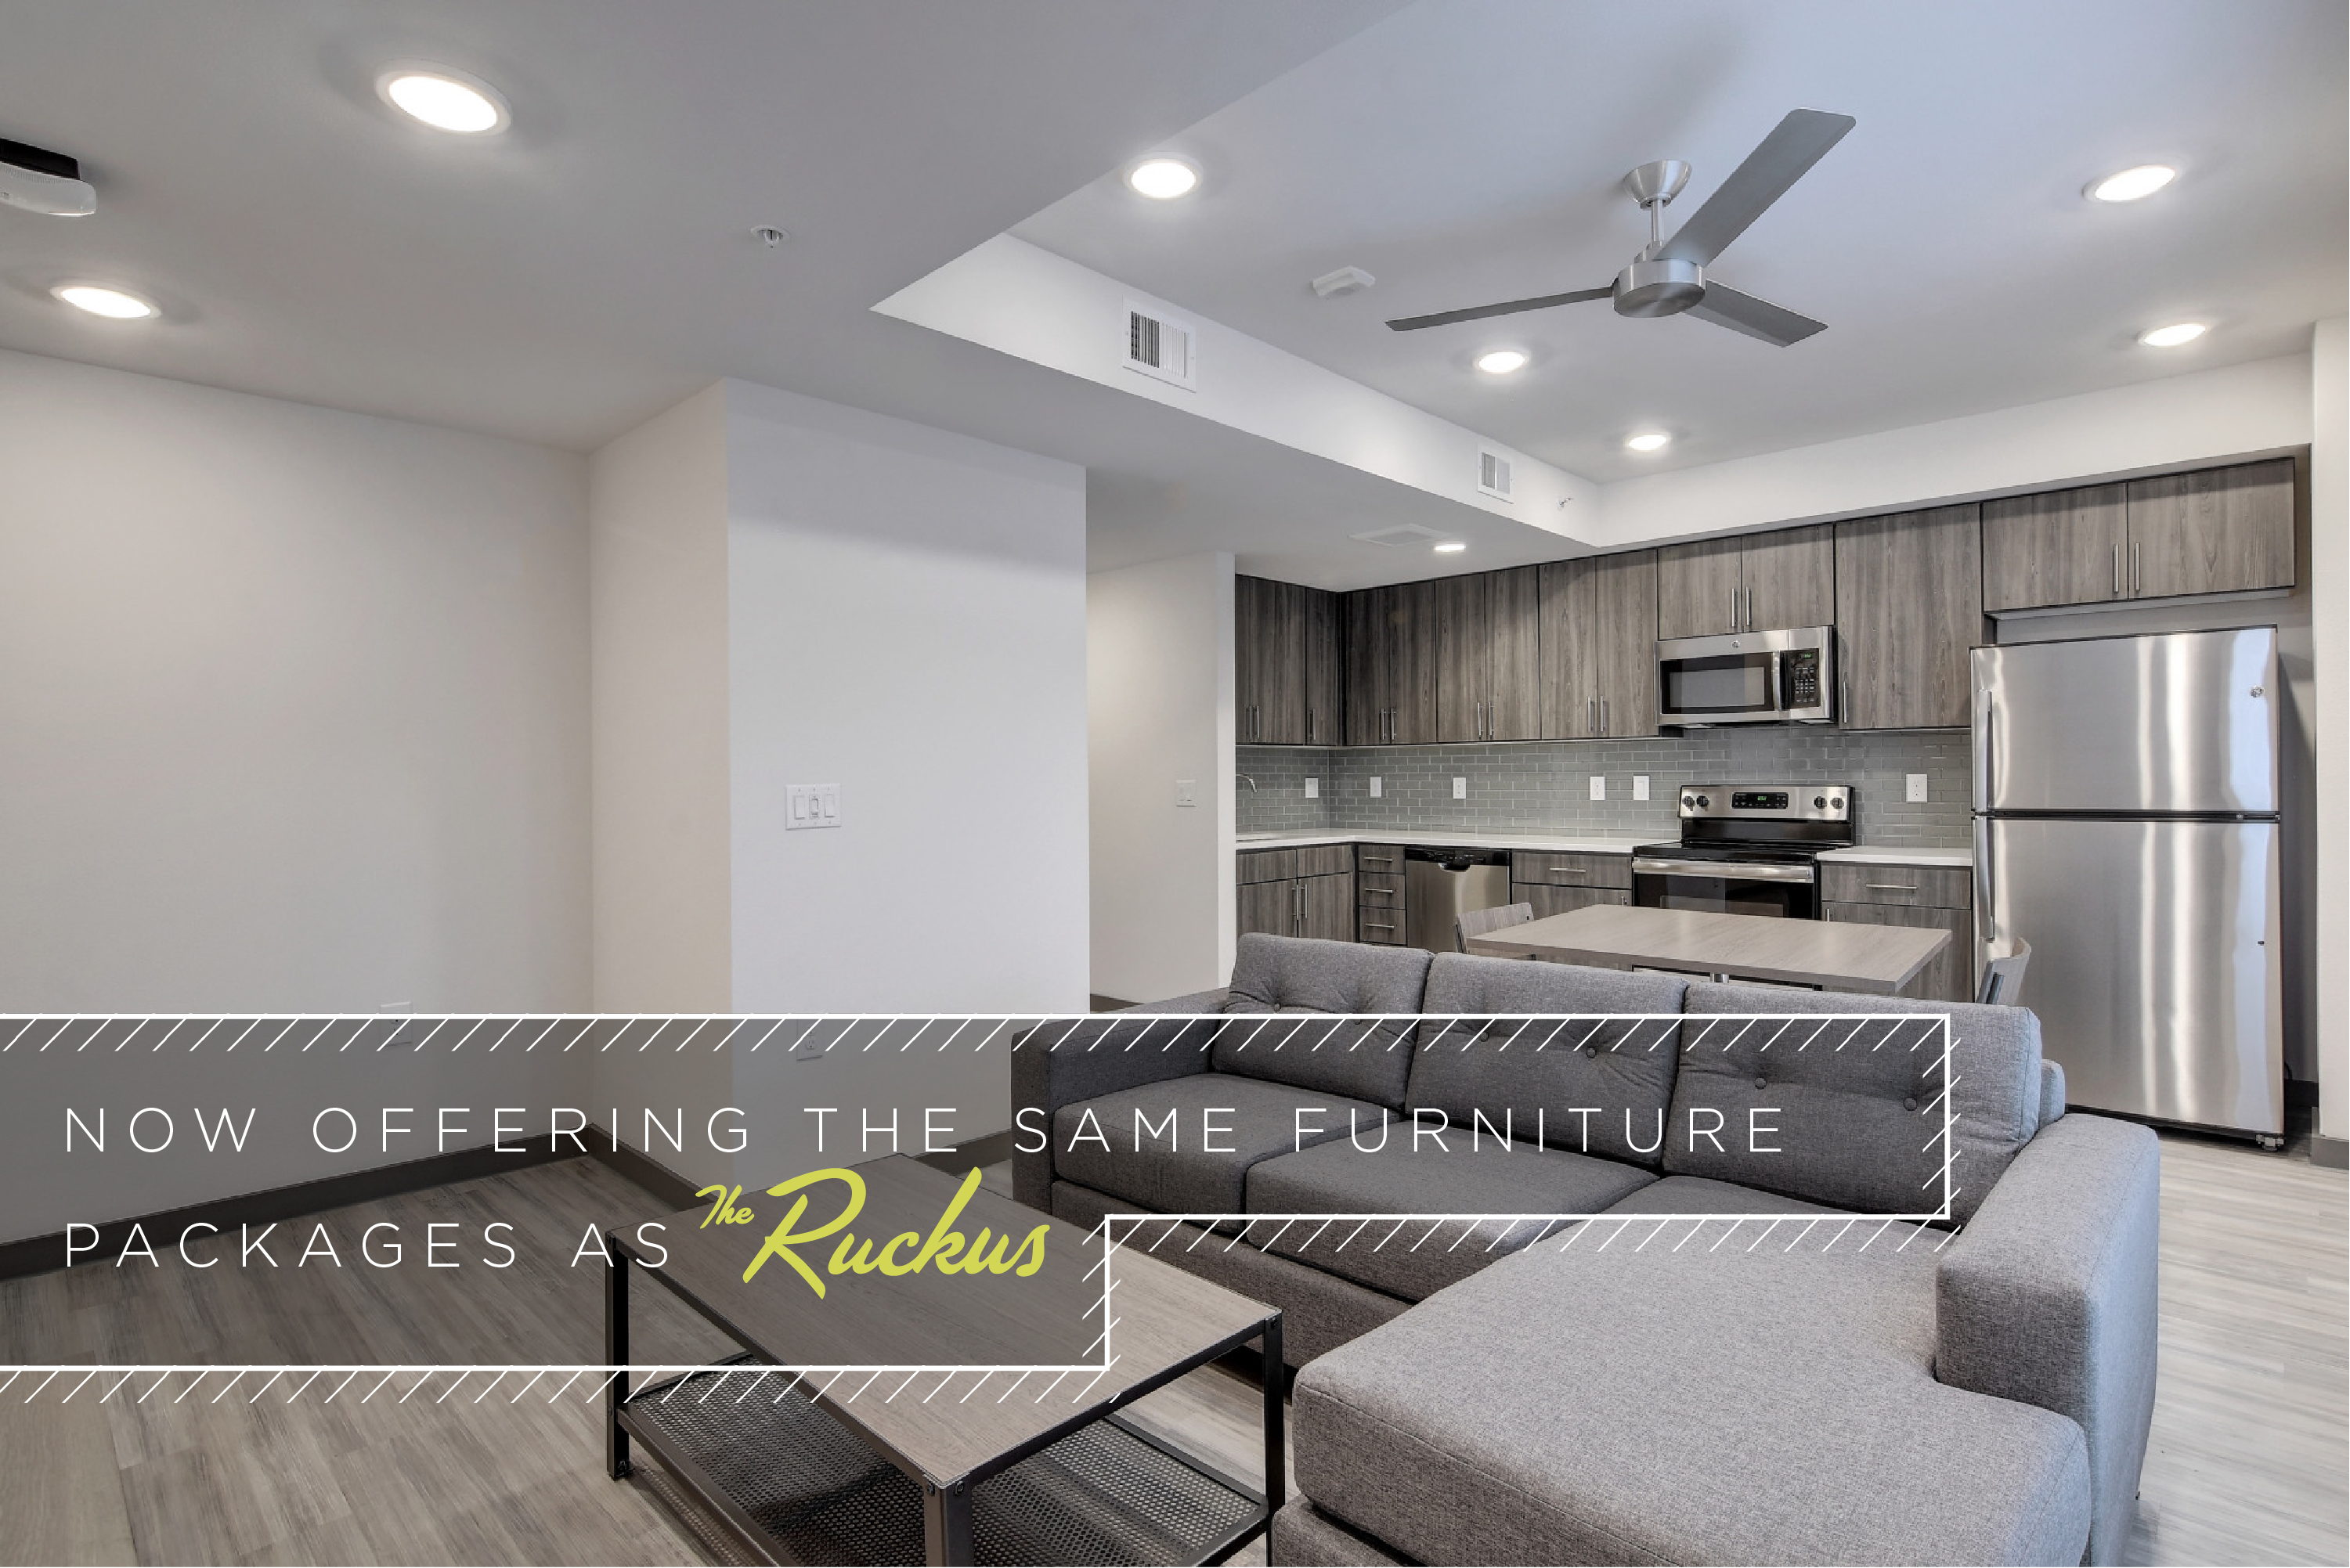 The Ruckus_New Furniture Package_11.26.18-01